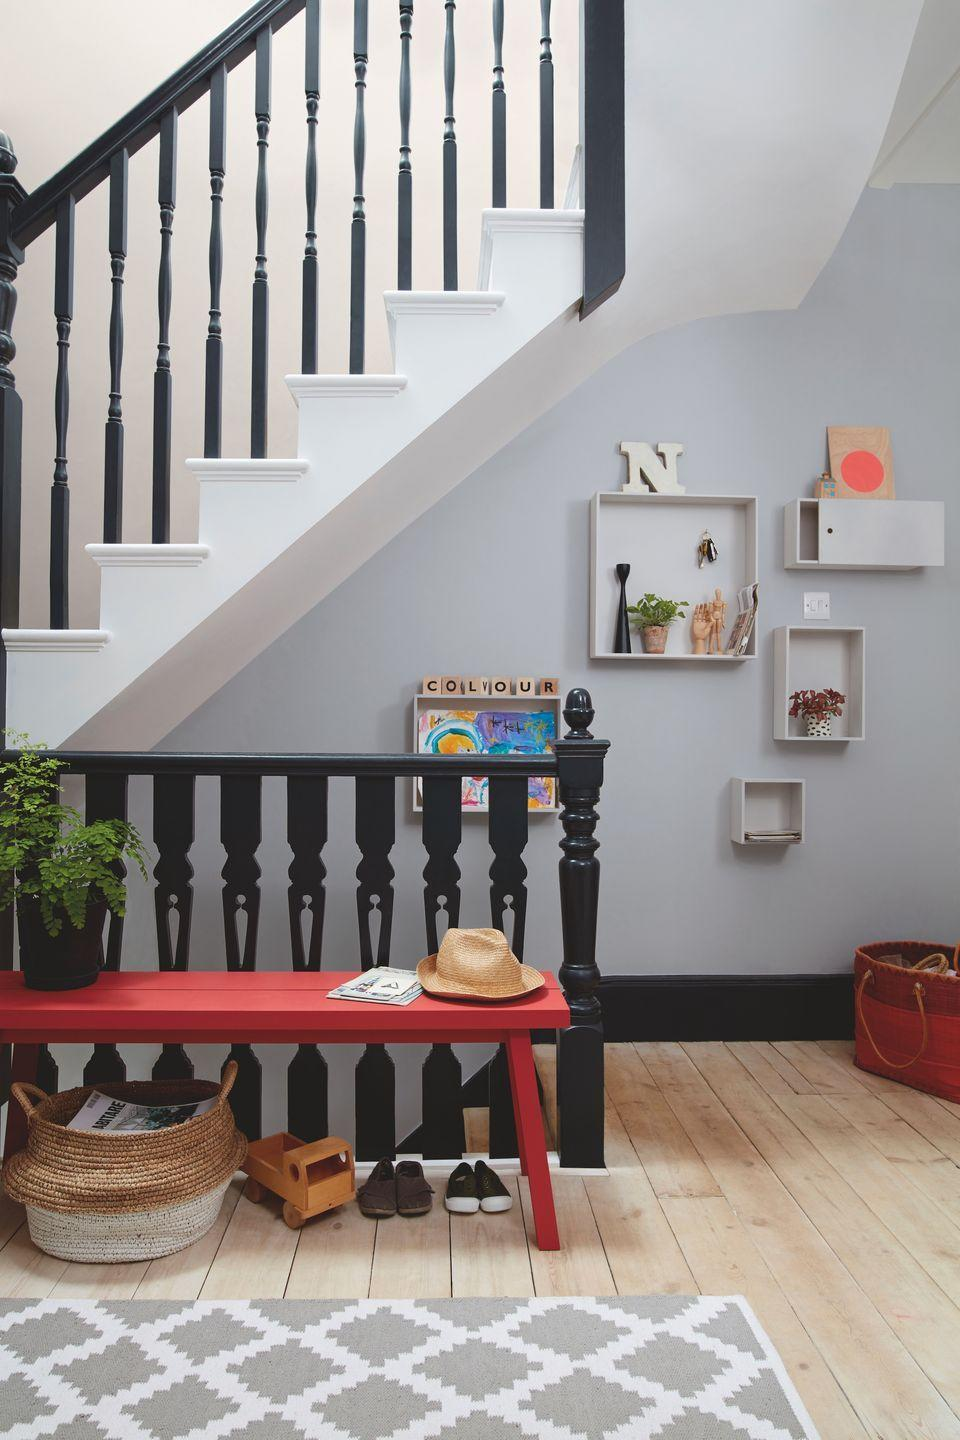 """<p>Looking to transform your <a href=""""https://www.housebeautiful.com/uk/decorate/hallway/a2283/hallway-decorating-ideas-tips/"""" rel=""""nofollow noopener"""" target=""""_blank"""" data-ylk=""""slk:entryway"""" class=""""link rapid-noclick-resp"""">entryway</a>? As one of the most high-traffic areas in the home, opt for durable colours that will hide wall imperfections.</p><p>According to Dulux, grey is a brilliant shade to choose. 'The go-to shade for stylish spaces, grey has become a colour with cult status, and this trendy shade is not going anywhere.' Instead of choosing an all-over grey, experiment with pops of colour such as red, dark green or navy to create a fabulous first impression. </p><p>Pictured: <a href=""""https://go.redirectingat.com?id=127X1599956&url=https%3A%2F%2Fwww.dulux.co.uk%2Fen%2Fproducts%2Ffilters%2FcccId_1187585&sref=https%3A%2F%2Fwww.housebeautiful.com%2Fuk%2Fdecorate%2Fwalls%2Fg36128885%2Fcolour-schemes-high-traffic-rooms%2F"""" rel=""""nofollow noopener"""" target=""""_blank"""" data-ylk=""""slk:'Mineral Haze' by Dulux"""" class=""""link rapid-noclick-resp"""">'Mineral Haze' by Dulux</a></p>"""